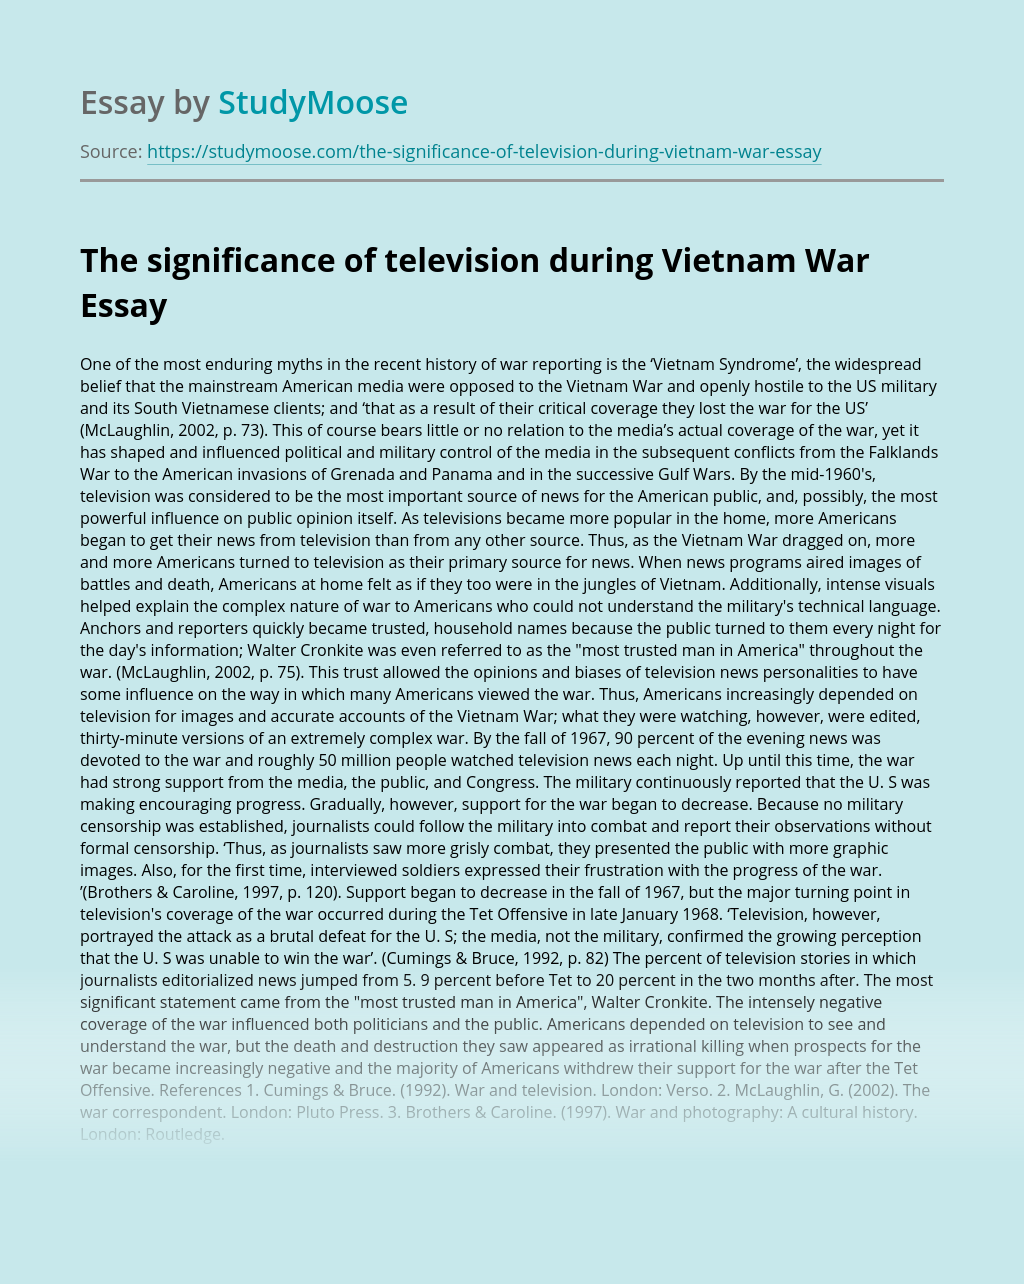 The significance of television during Vietnam War